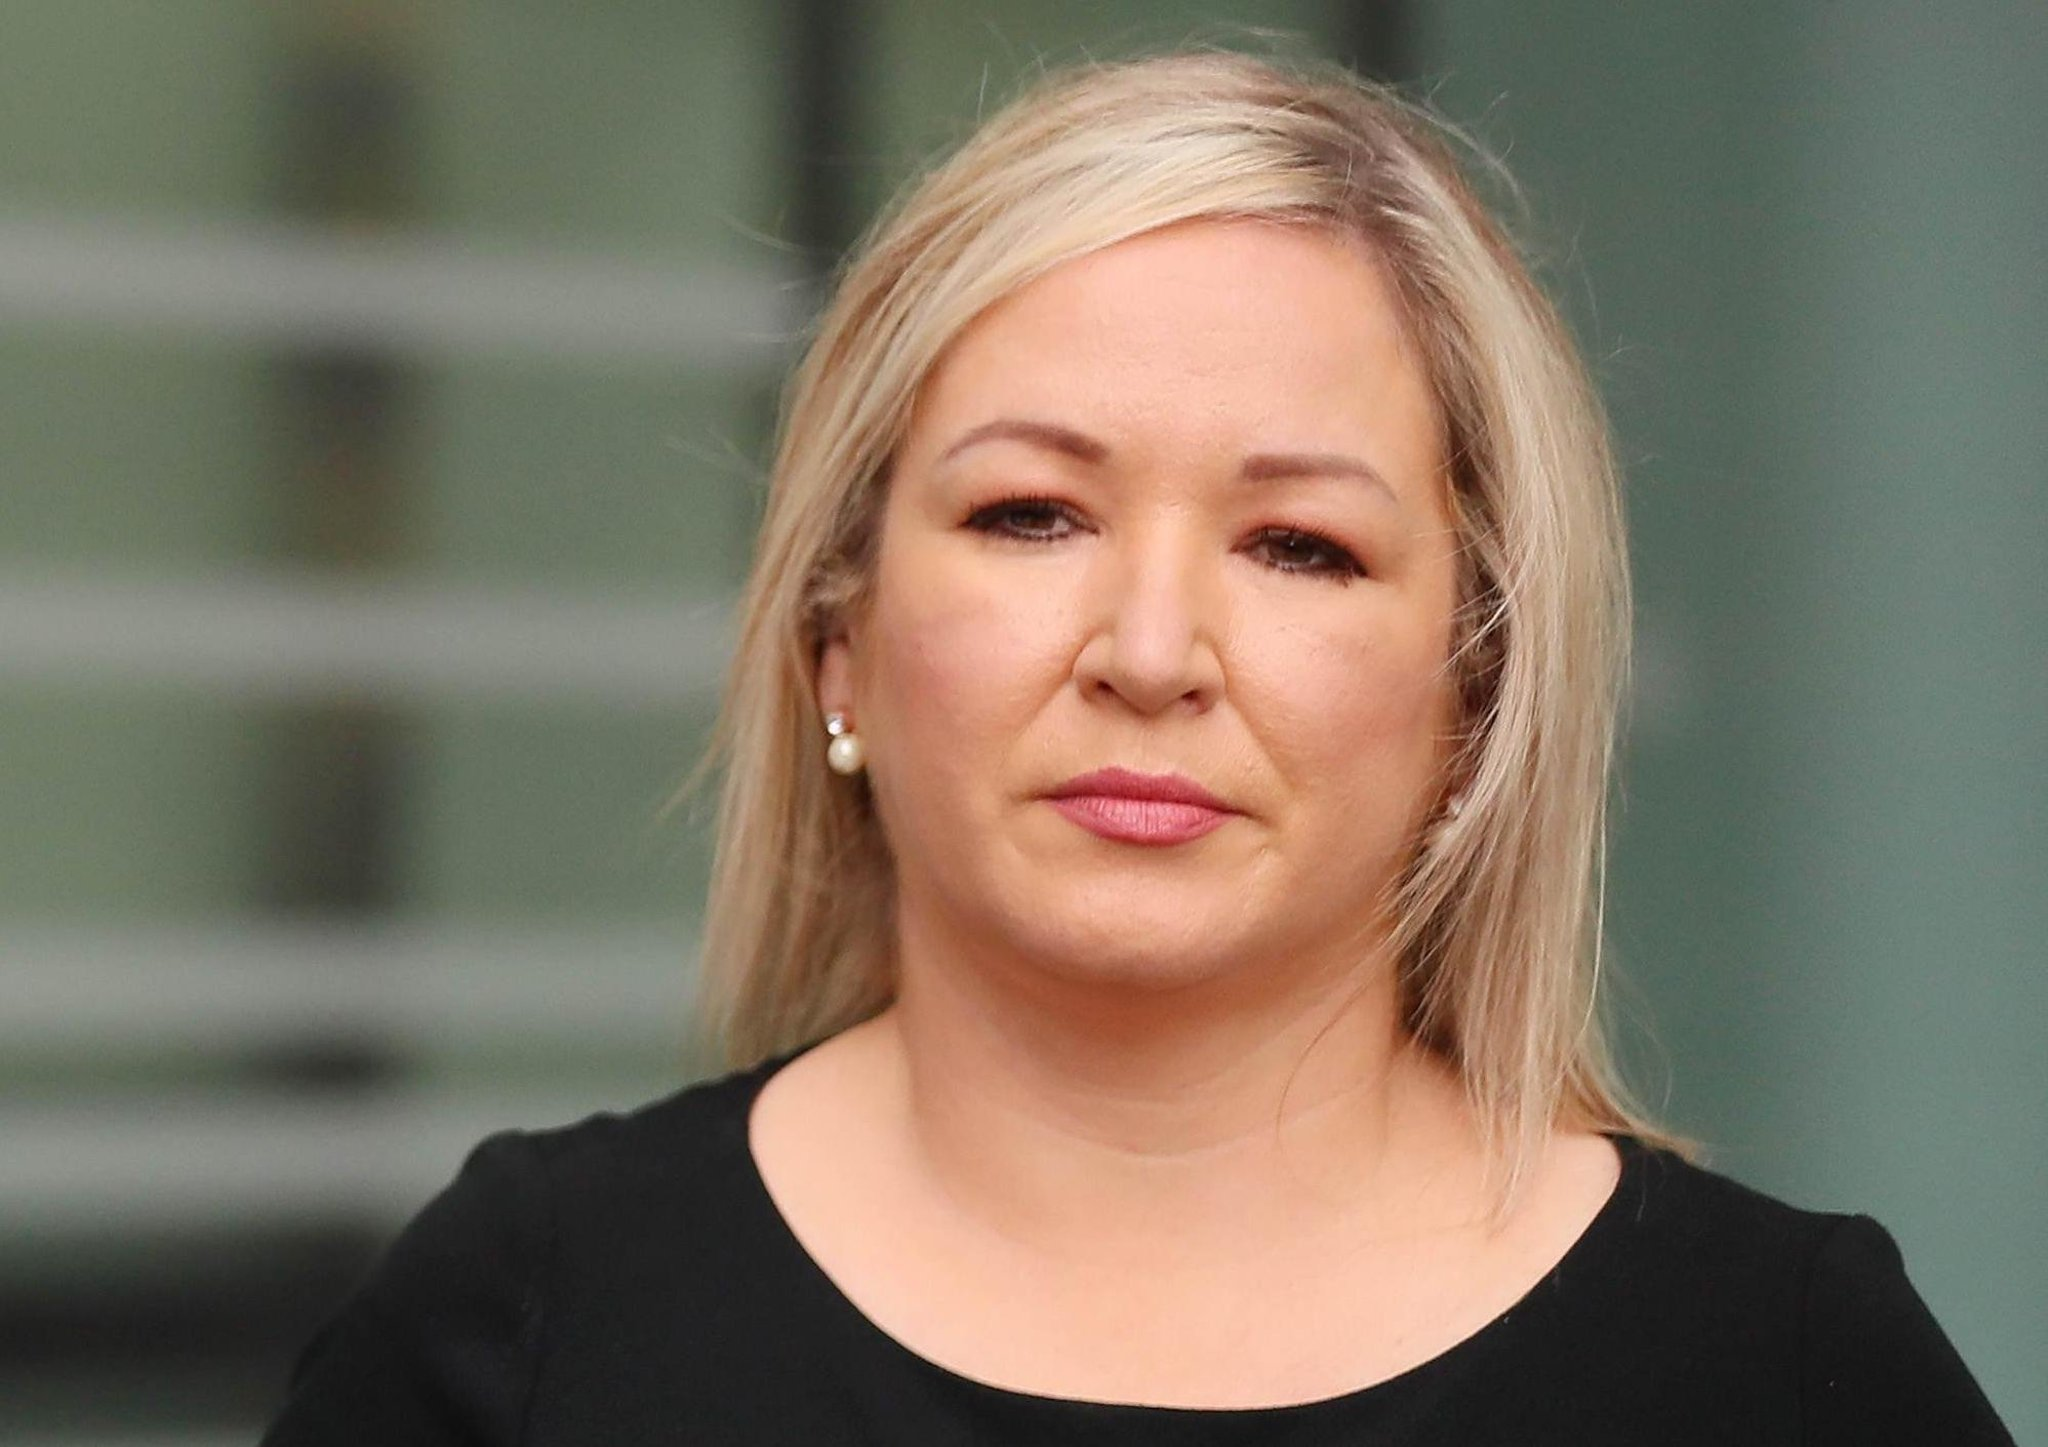 Michelle O'Neill: I removed uninvited person from my home